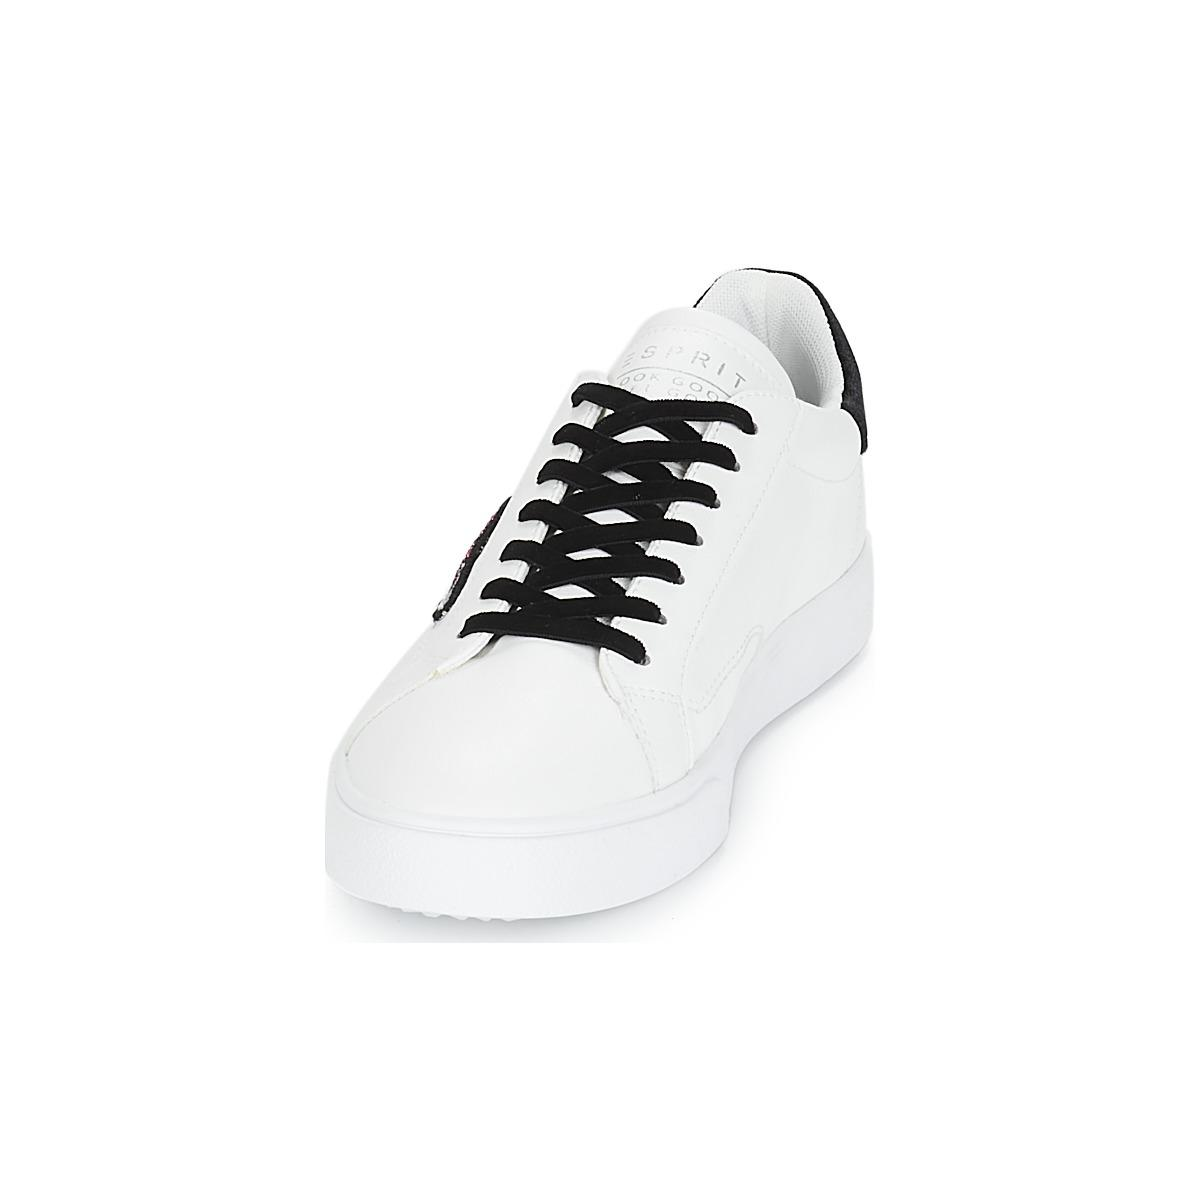 Women's Ufo trainers Lyst in White Lu Esprit Shoes Cherry In White qp5Tft